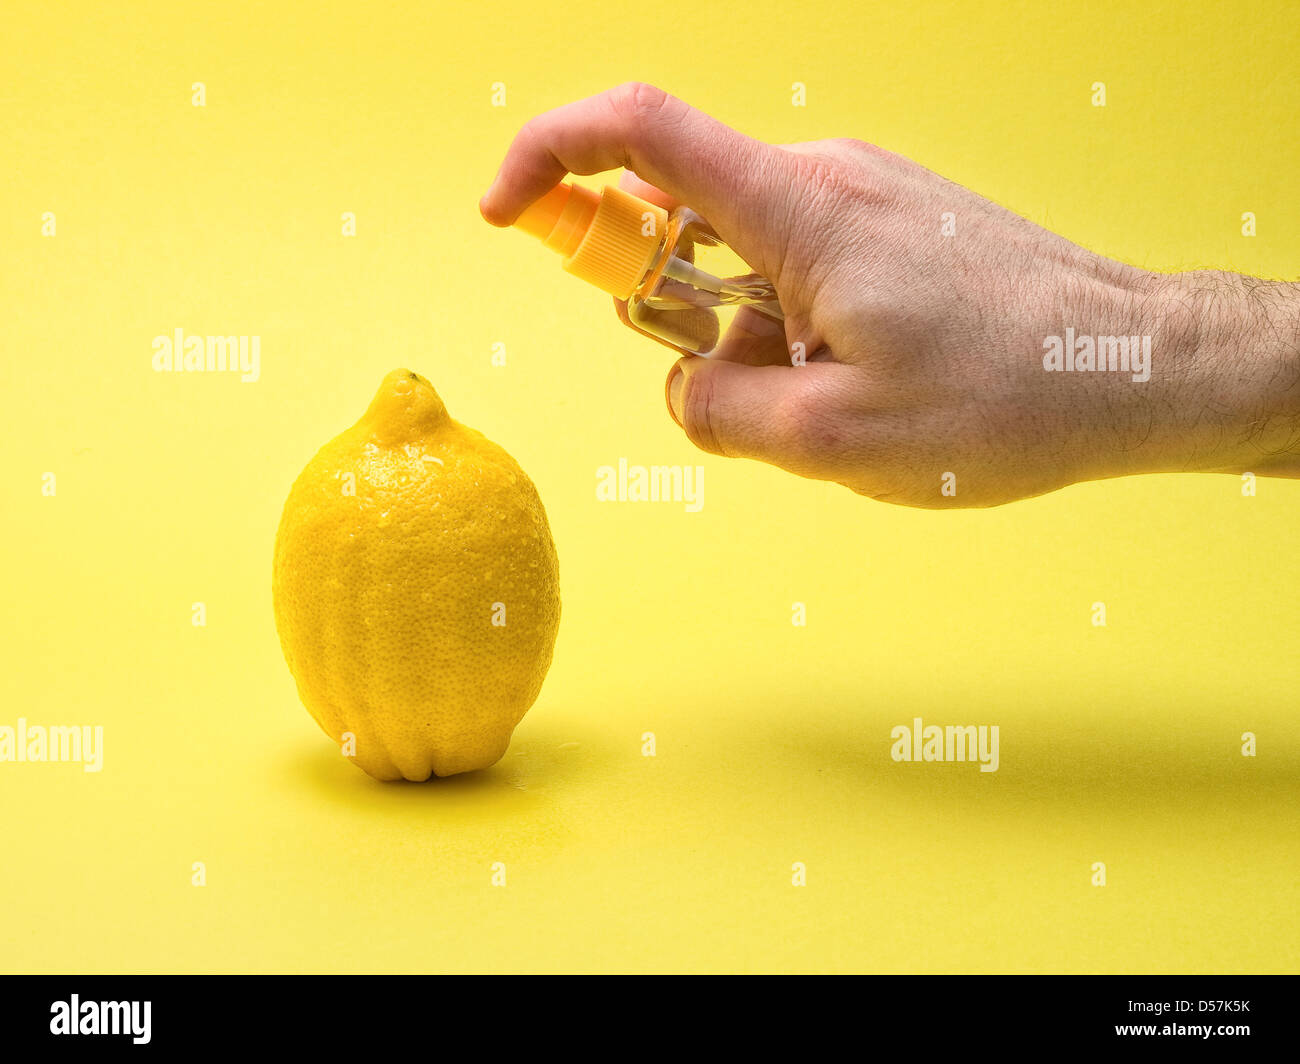 Applying glycerin to a lemon. It aims to give a fresh and healthy fruit; advertising photography. - Stock Image